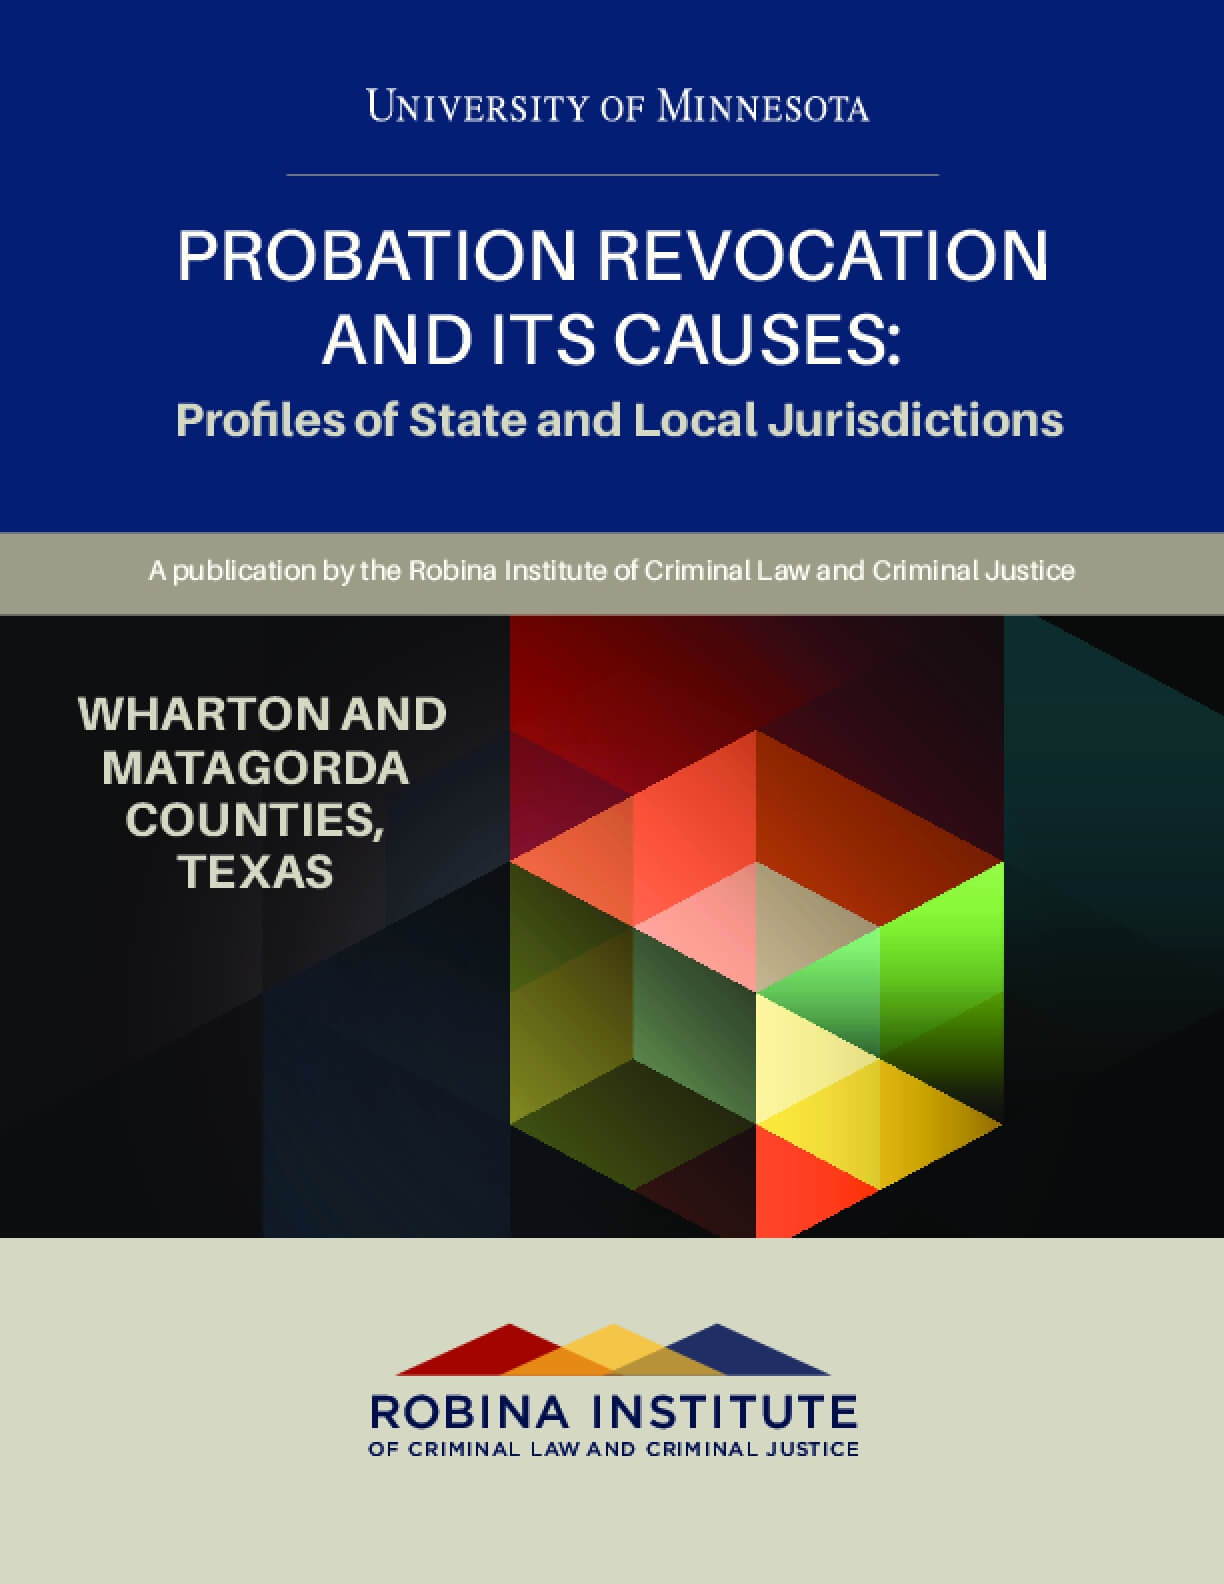 Probation Revocation and Its Causes: Profiles of State and Local Jurisdictions, Wharton and Matagorda Counties, Texas